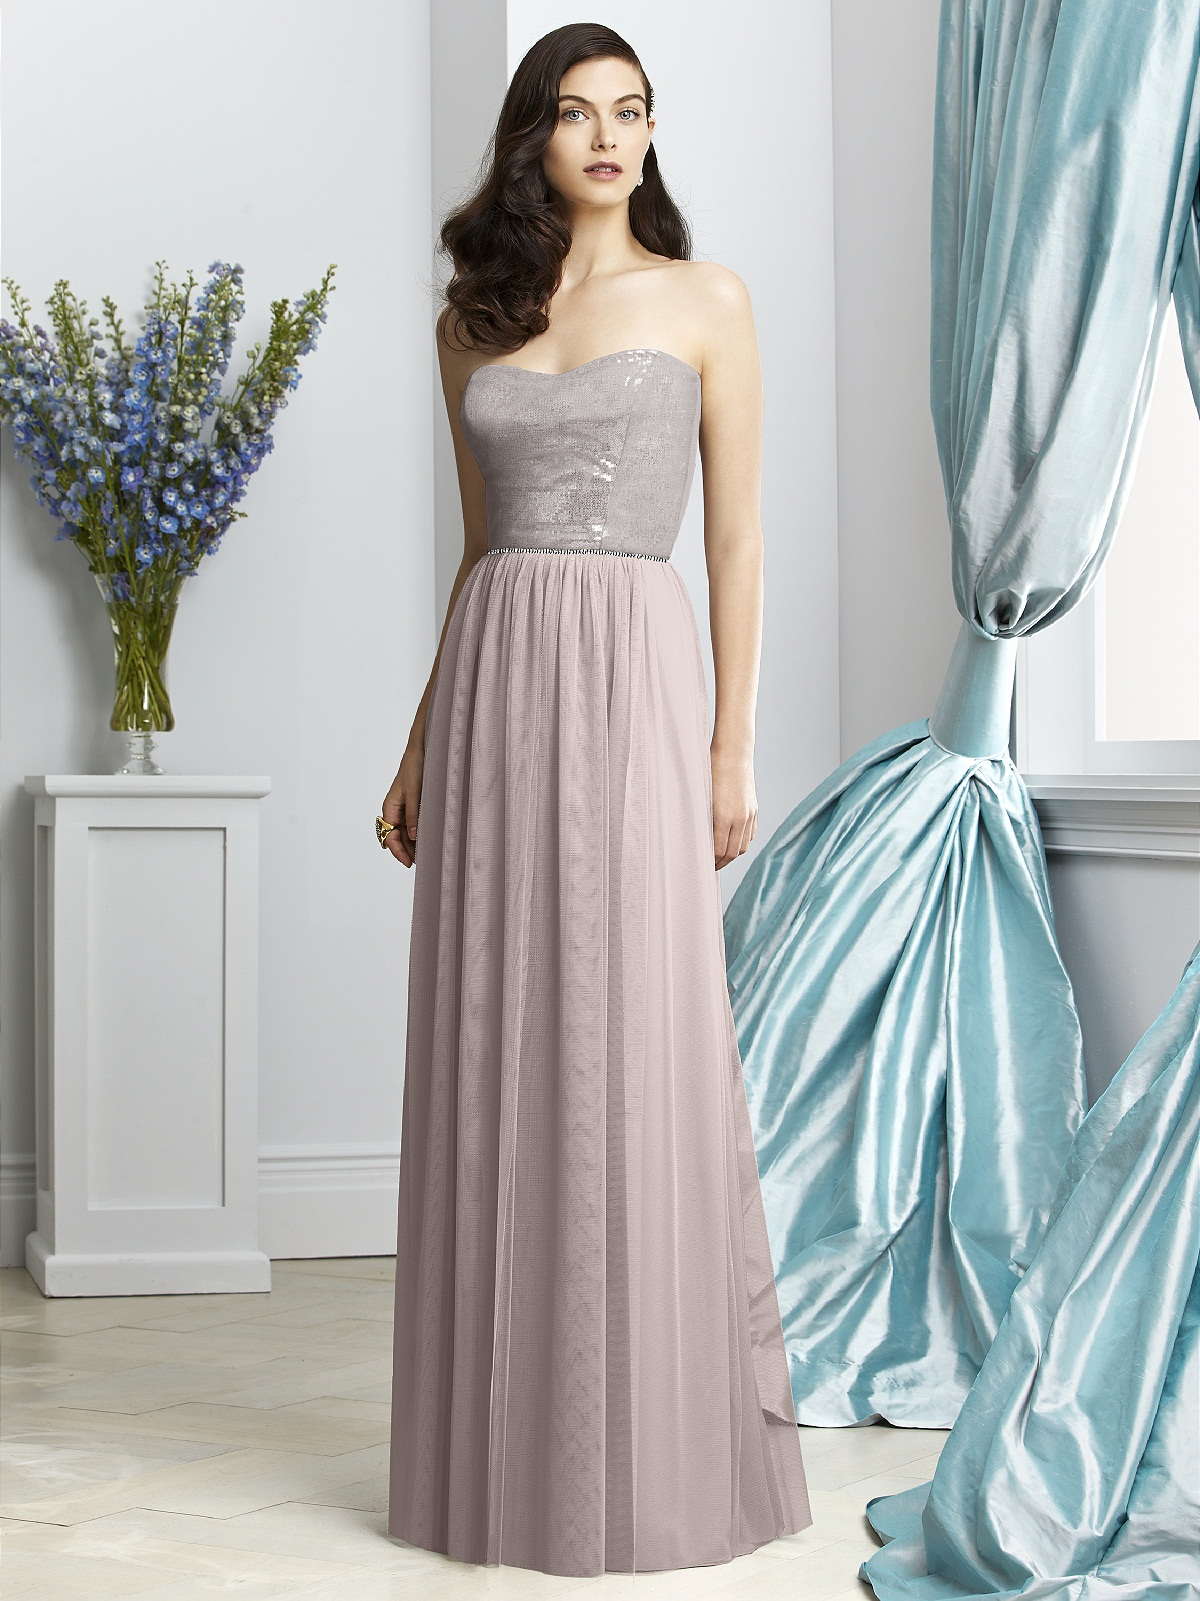 Dessy beautiful bridesmaid dresses at bliss bridal kelowna ombrellifo Gallery